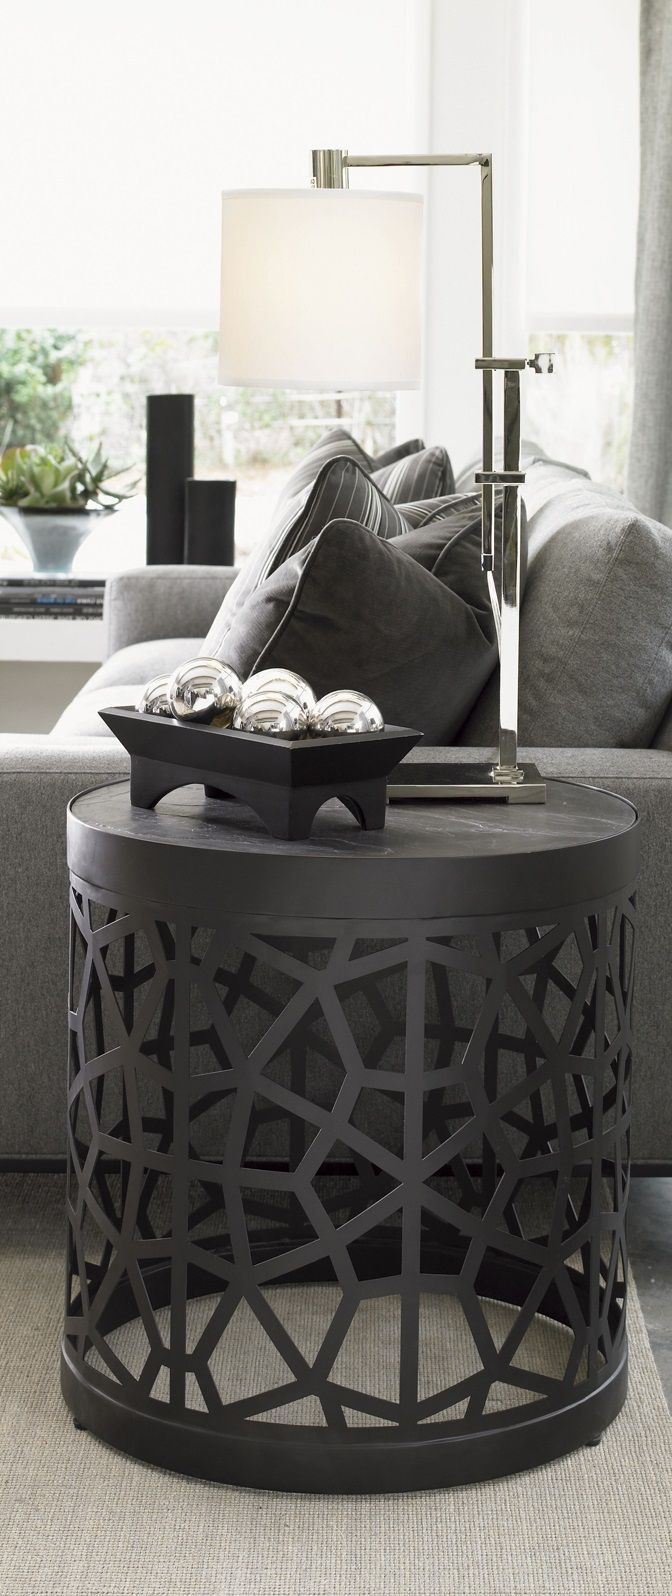 A unique side table like this is a great way to liven up a modern side tables accent tables end tables moder home decor interior design ideas casegood inspirations geotapseo Images